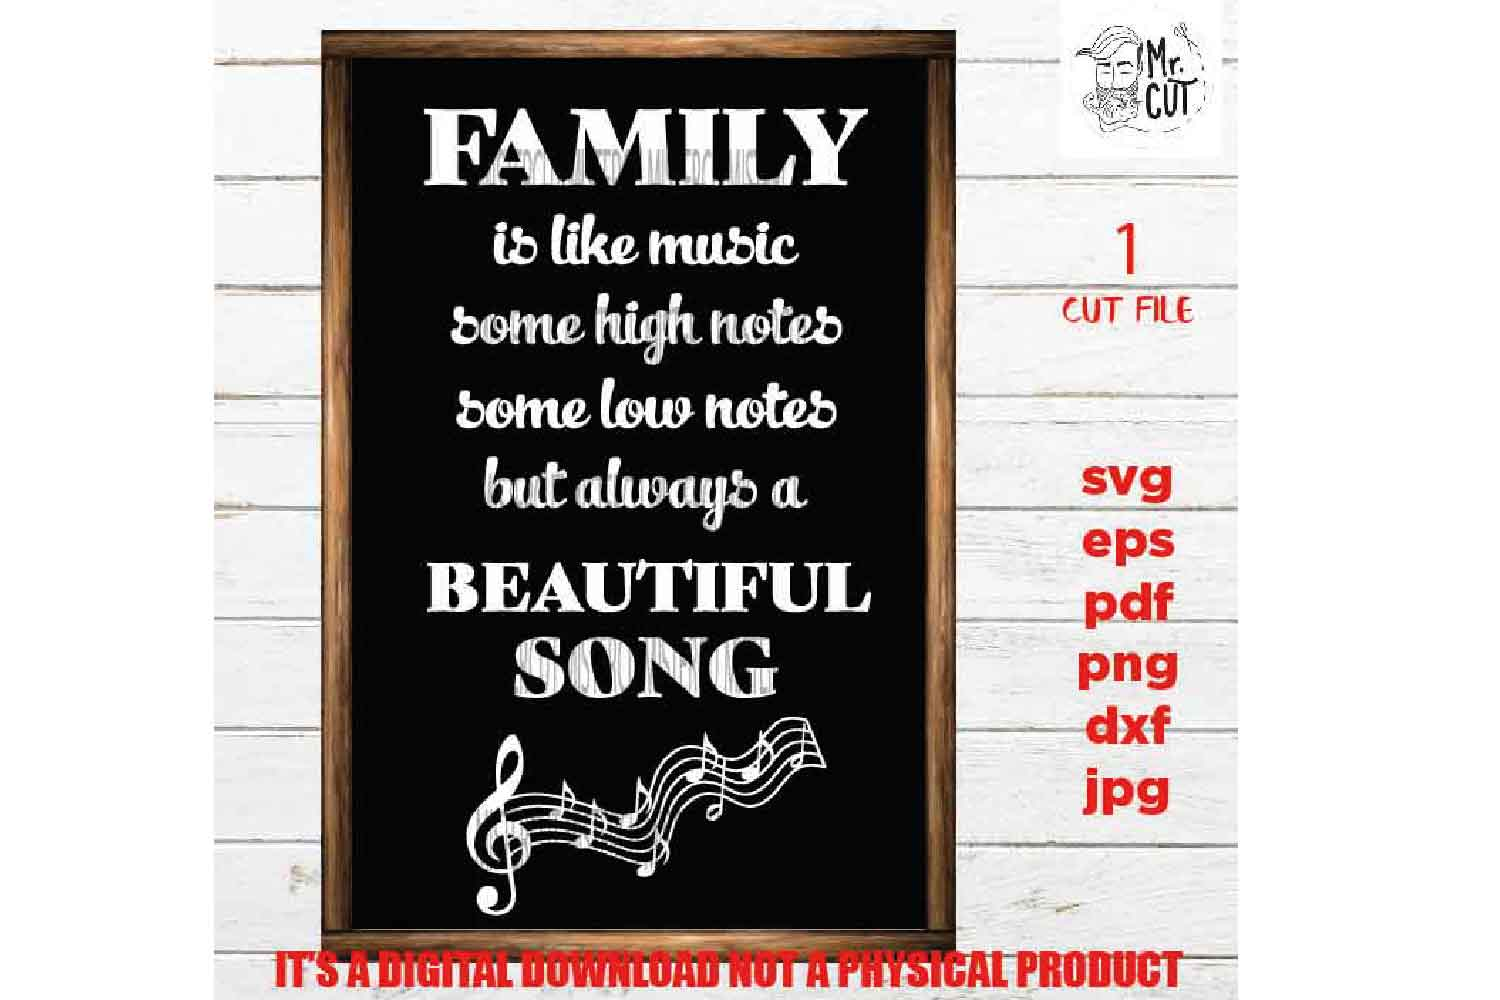 Family sign SVG, Family is like music SVG, reunion, dxf, jpg example image 3